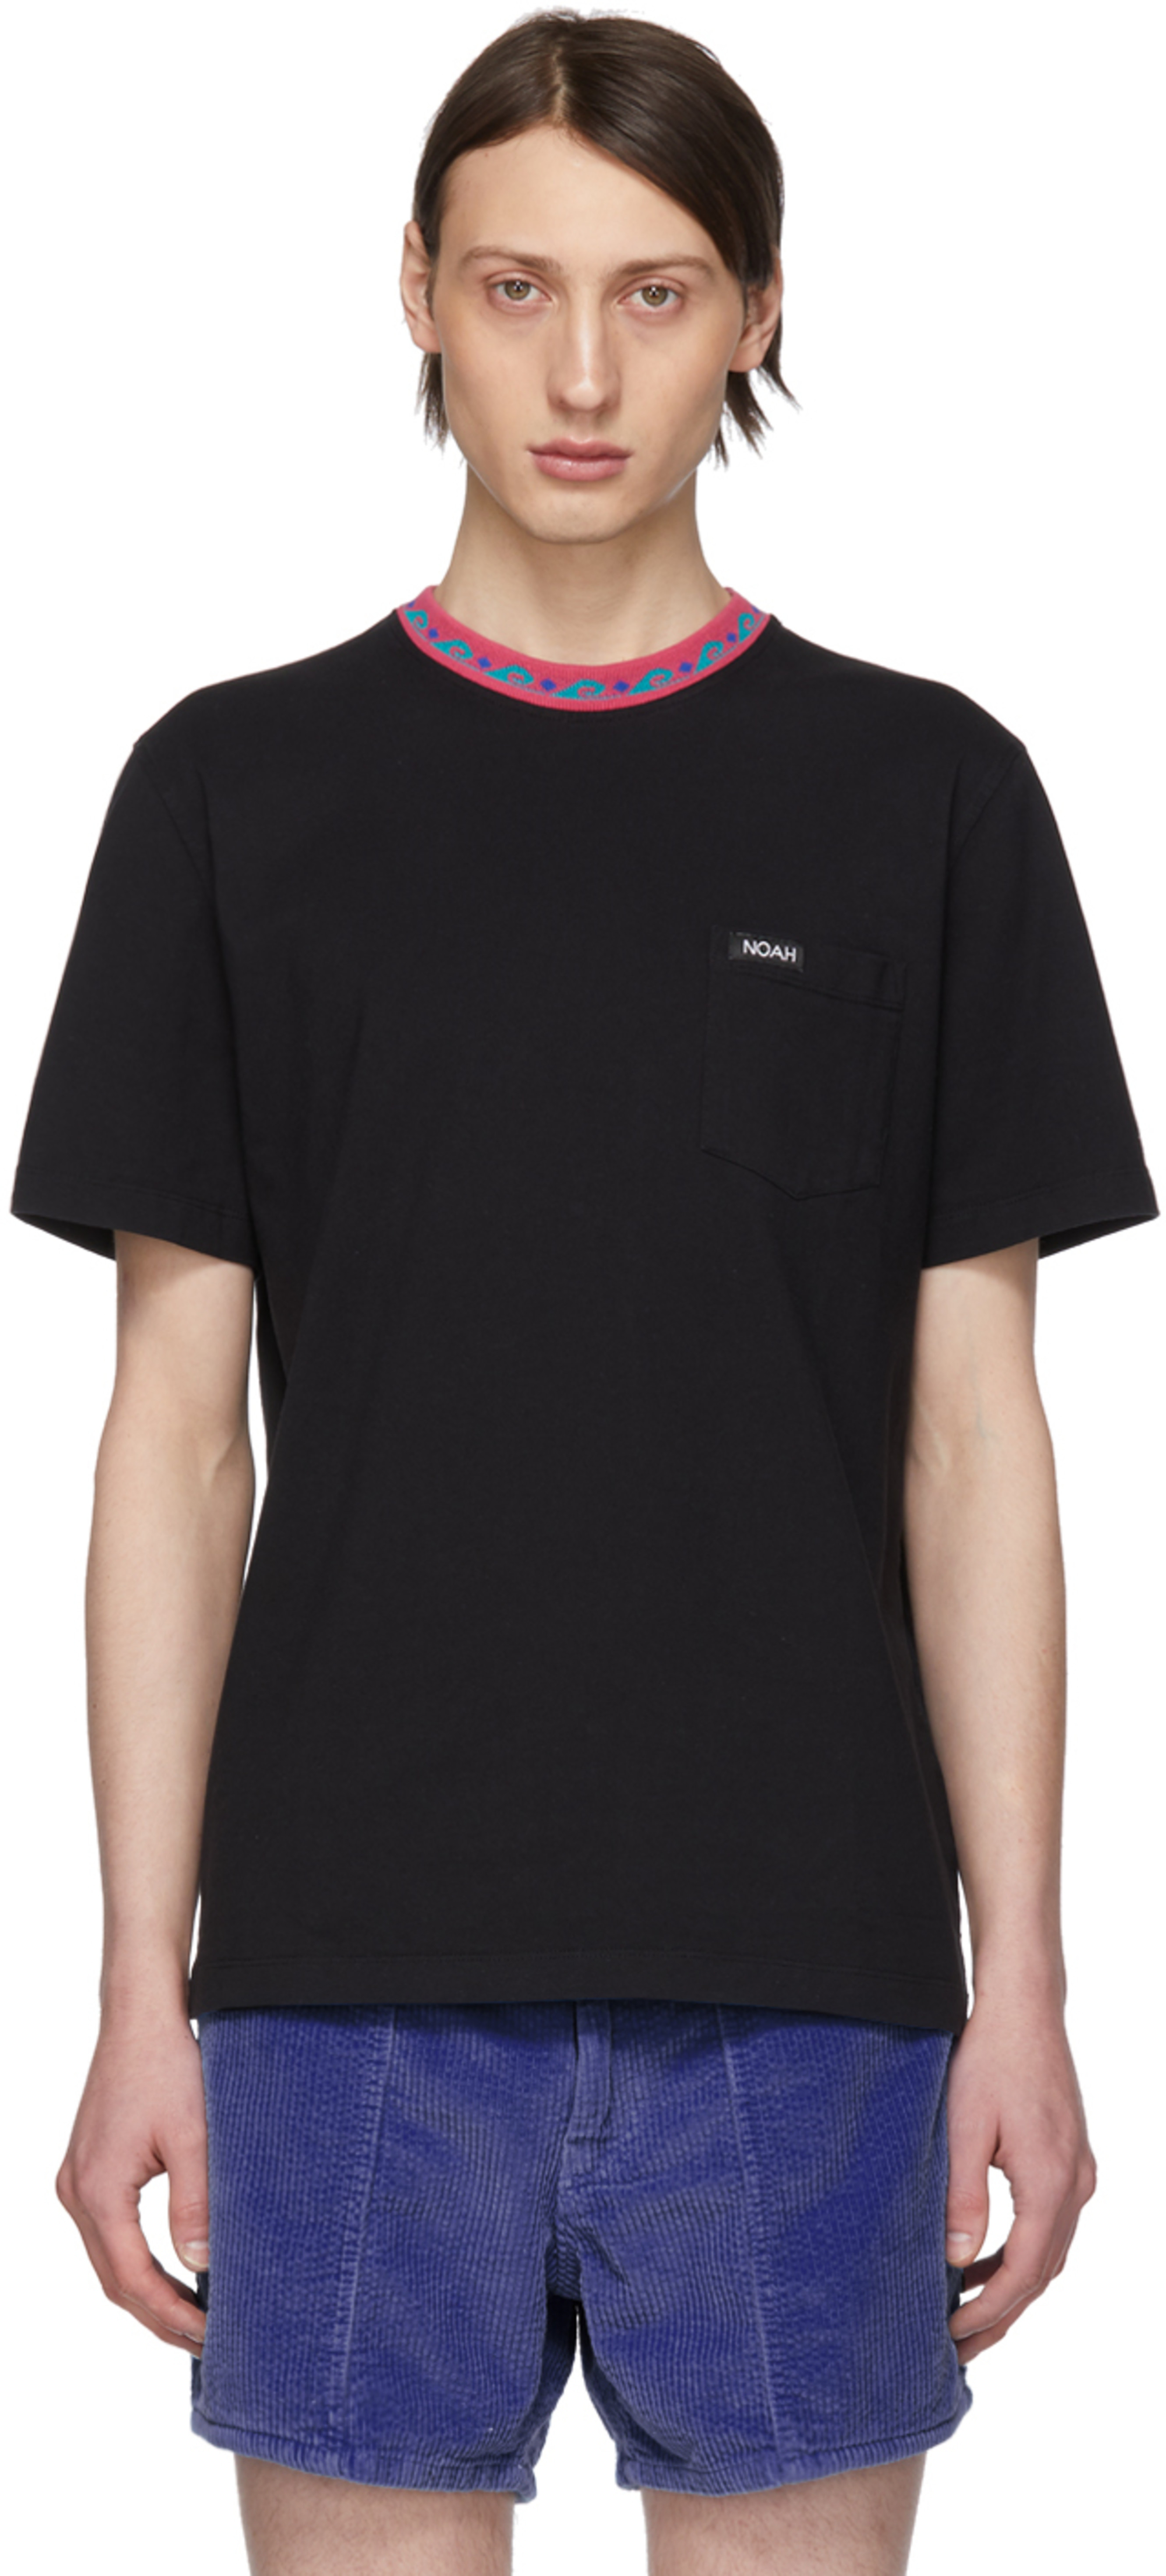 9171c72c7979f Noah Nyc for Men SS19 Collection